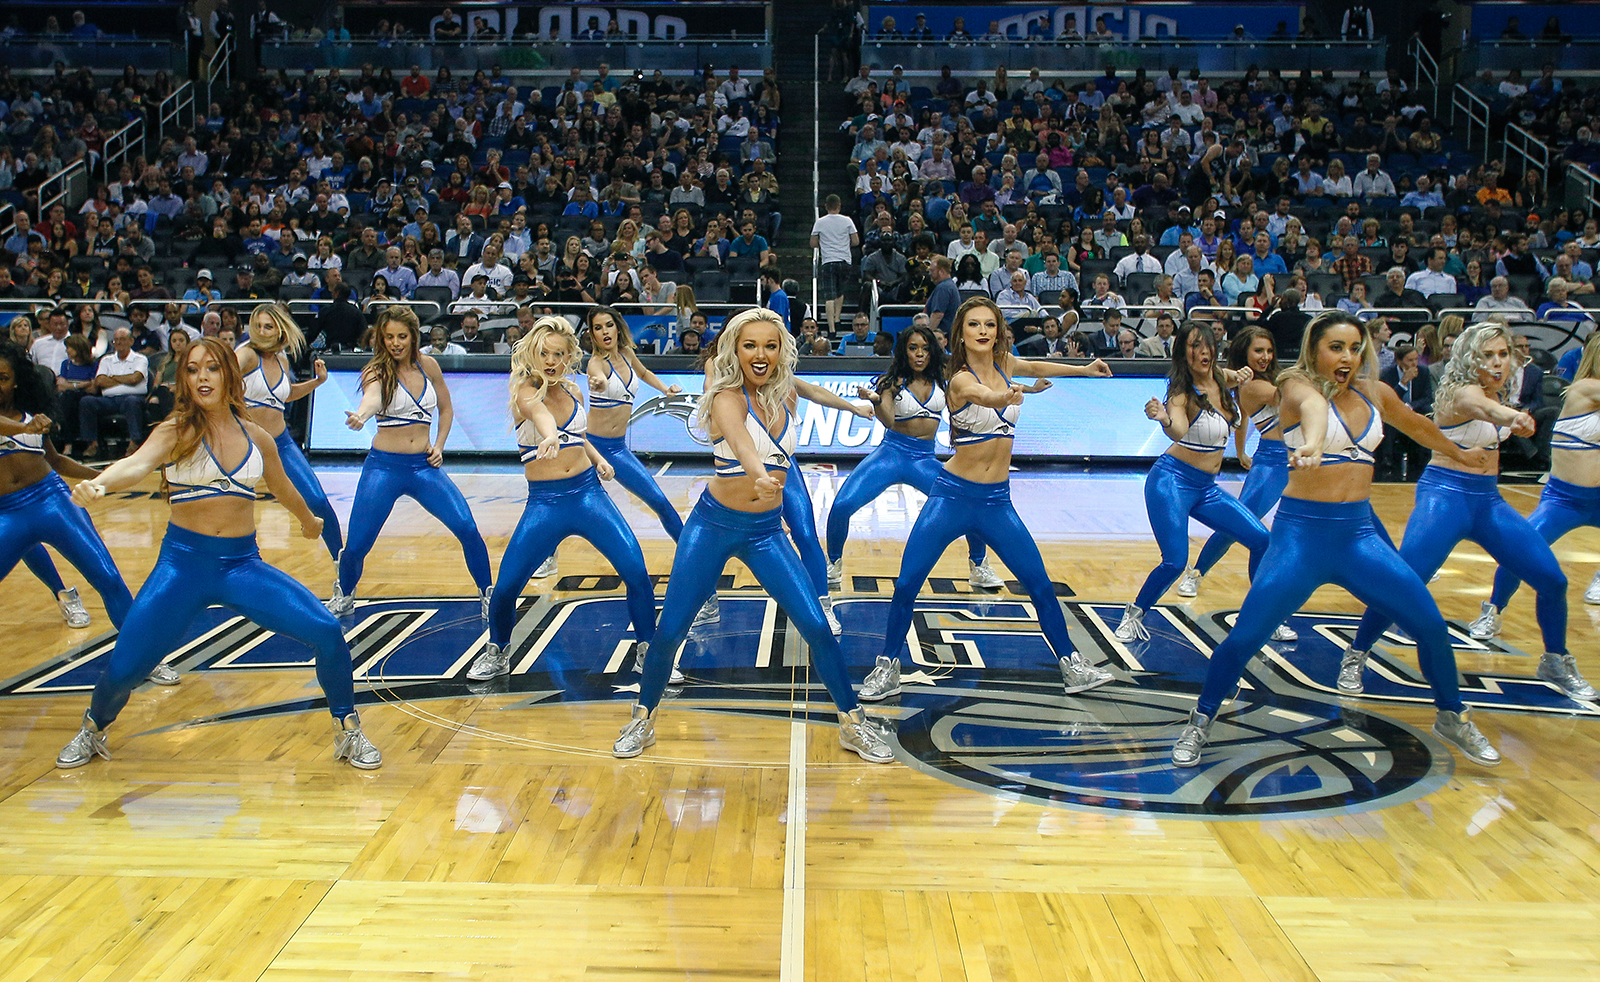 Apr 11, 2016; Orlando, FL, USA; Thde Orlando Magic Dancers perform during the second half of a basketball game between the Milwaukee Bucks and the Orlando Magic at Amway Center. The Magic won 107-98. Mandatory Credit: Reinhold Matay-USA TODAY Sports